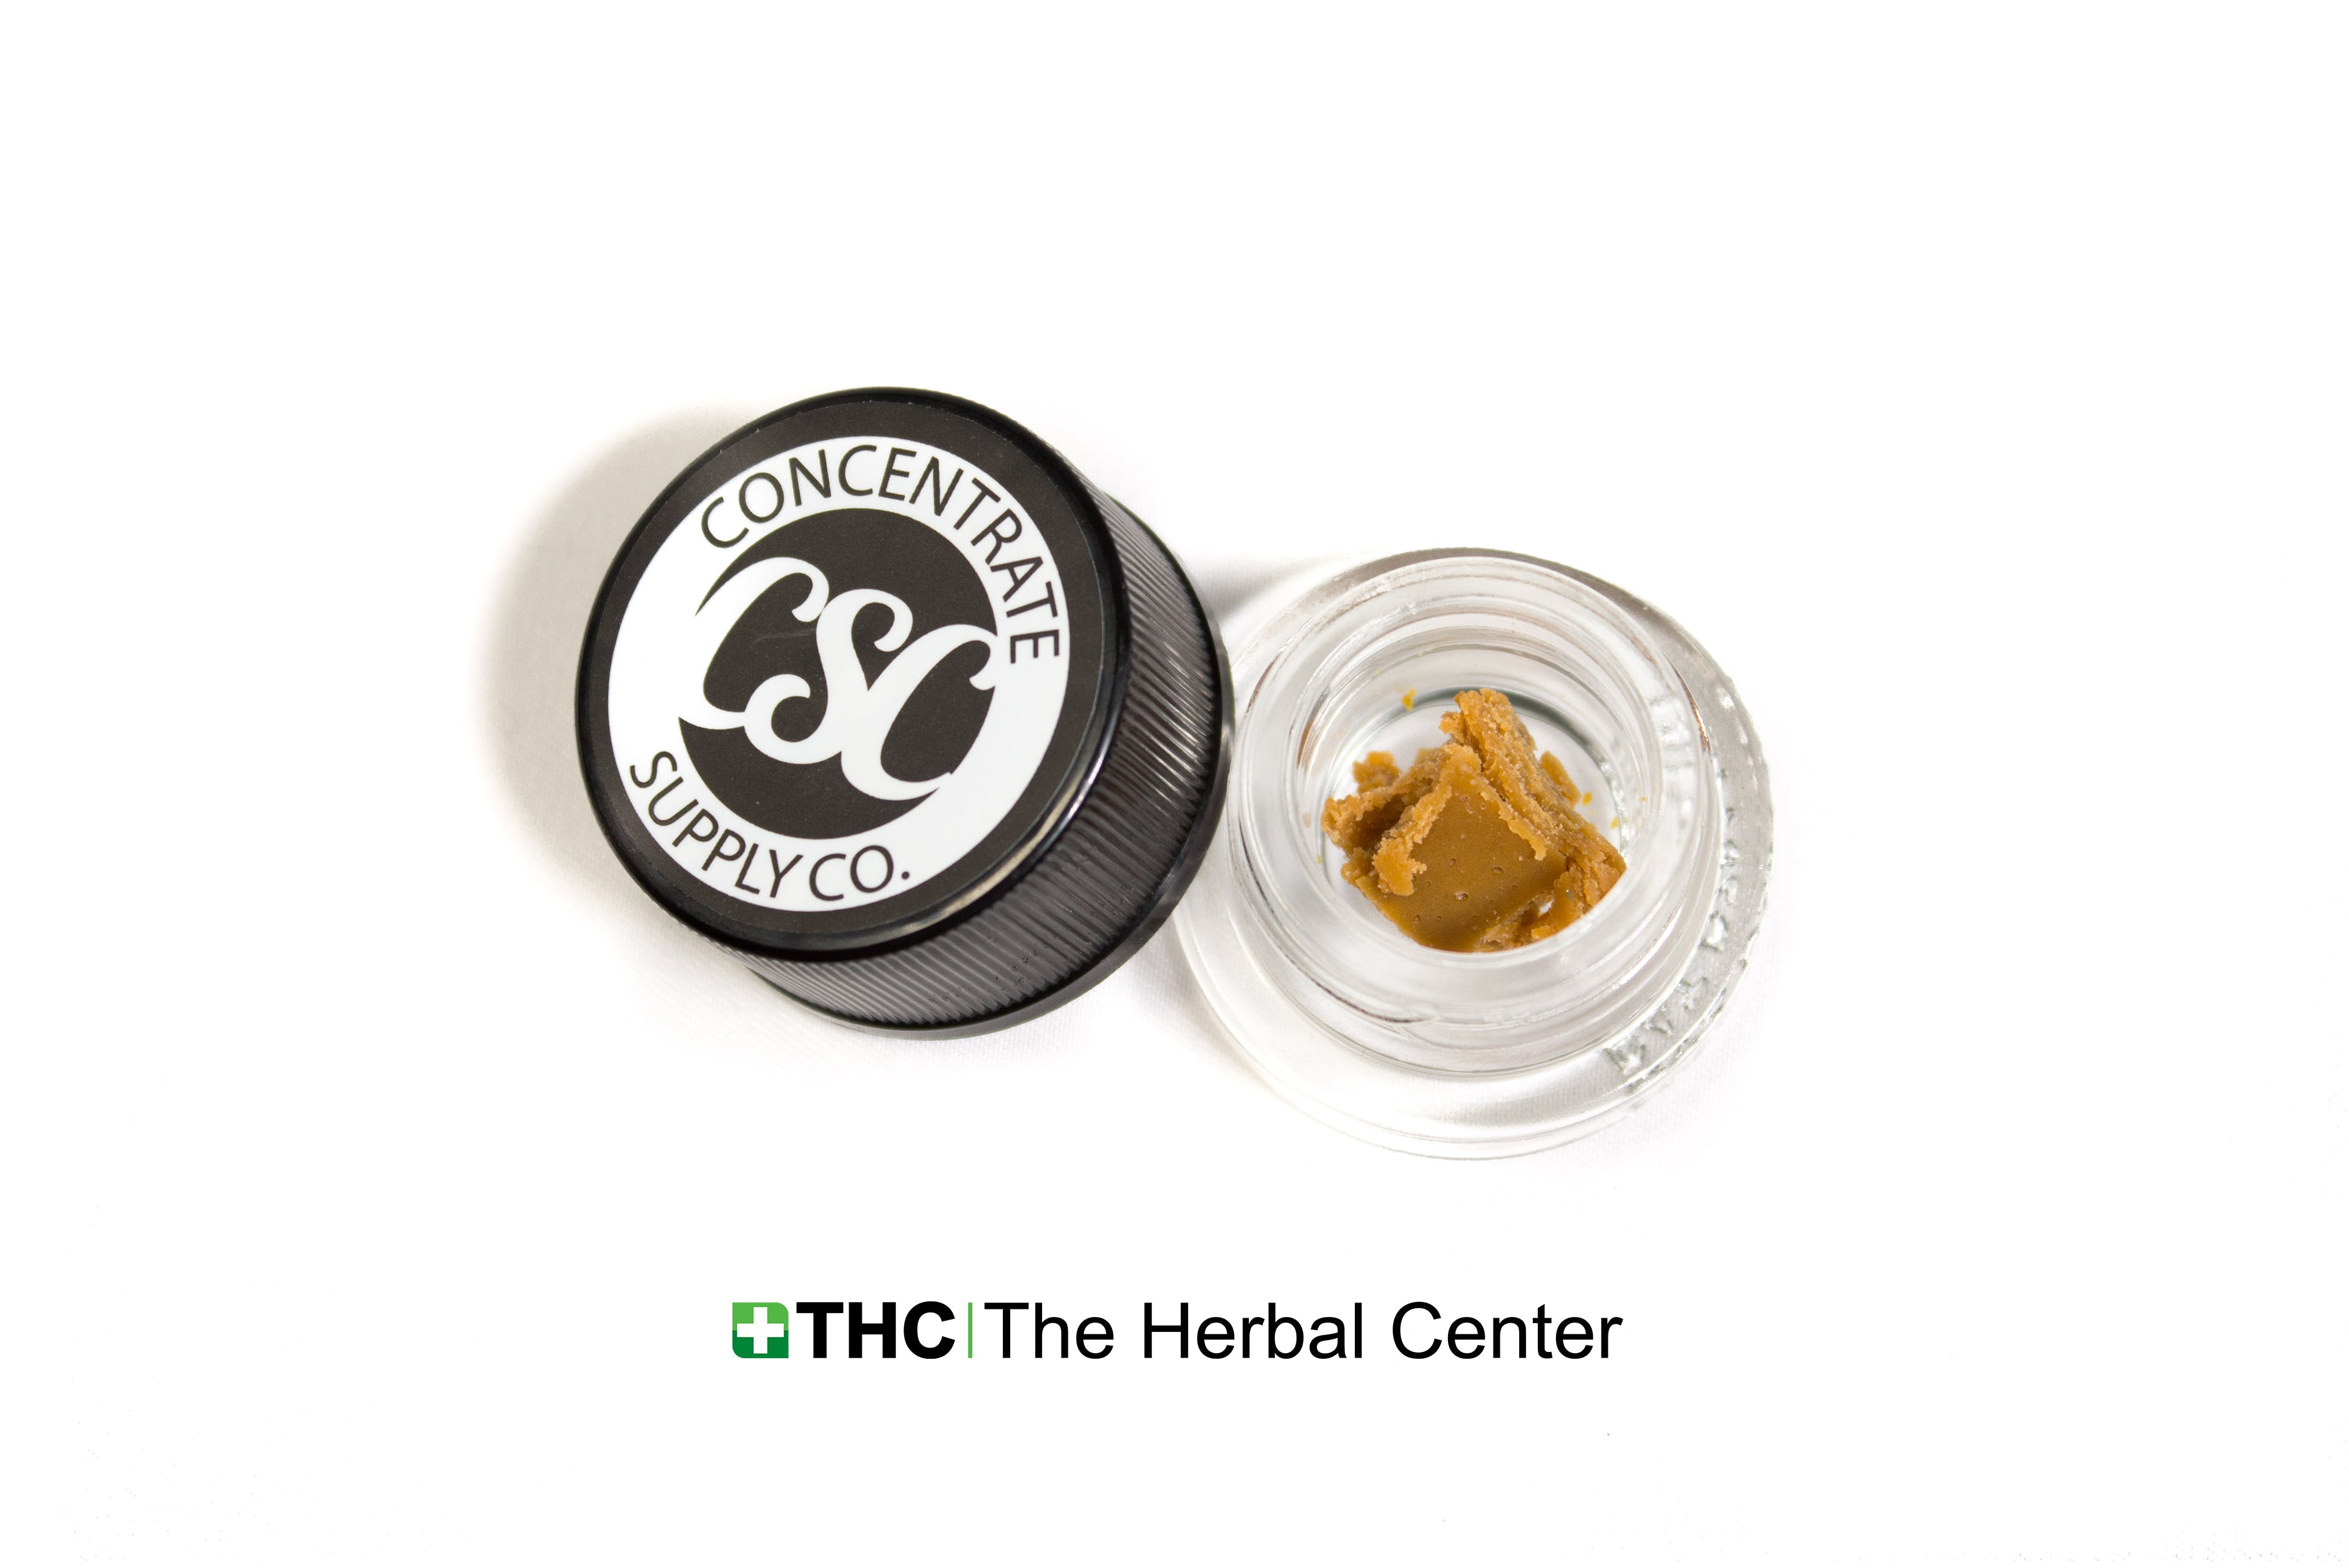 concentrate-csc-wax-larry-og